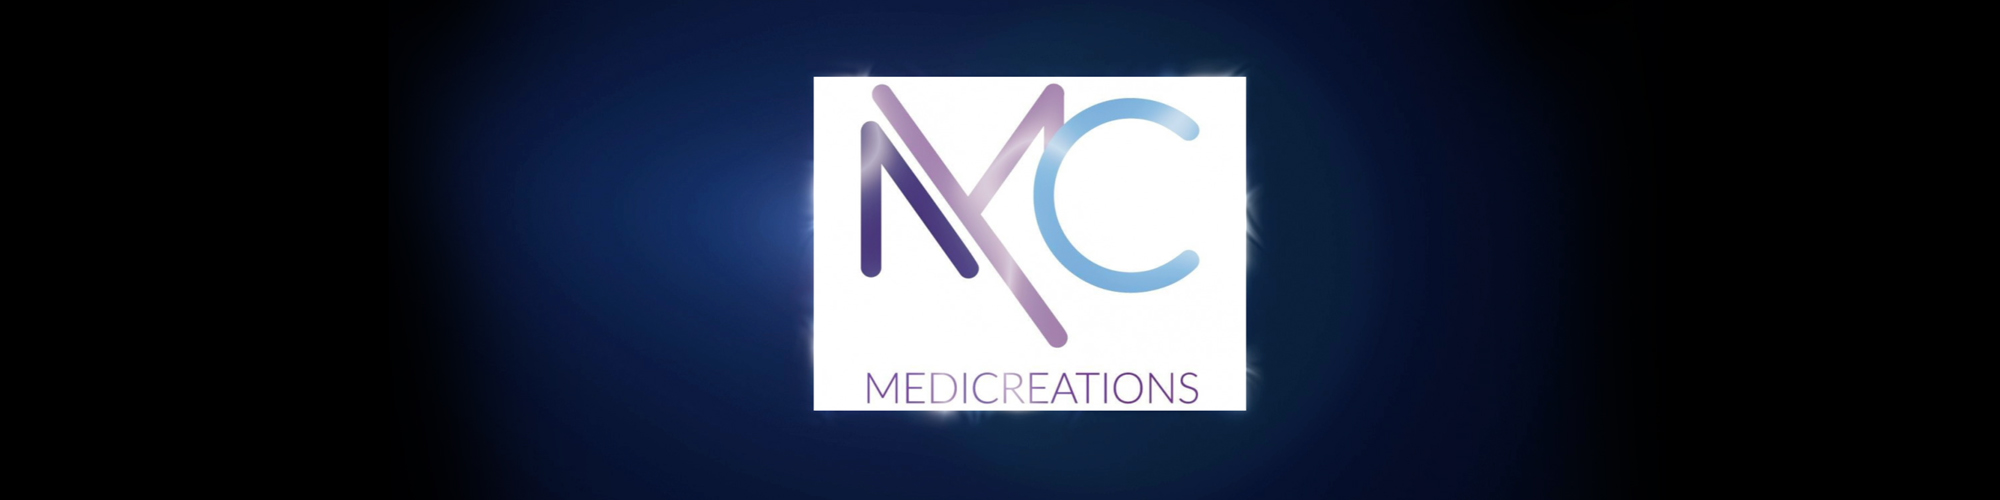 Medicreations.com - IPL, Diode, CO2, Q-Switch, Radio Frequency and Infrared type of lasers and more technologies FOR $90 A WEEK!